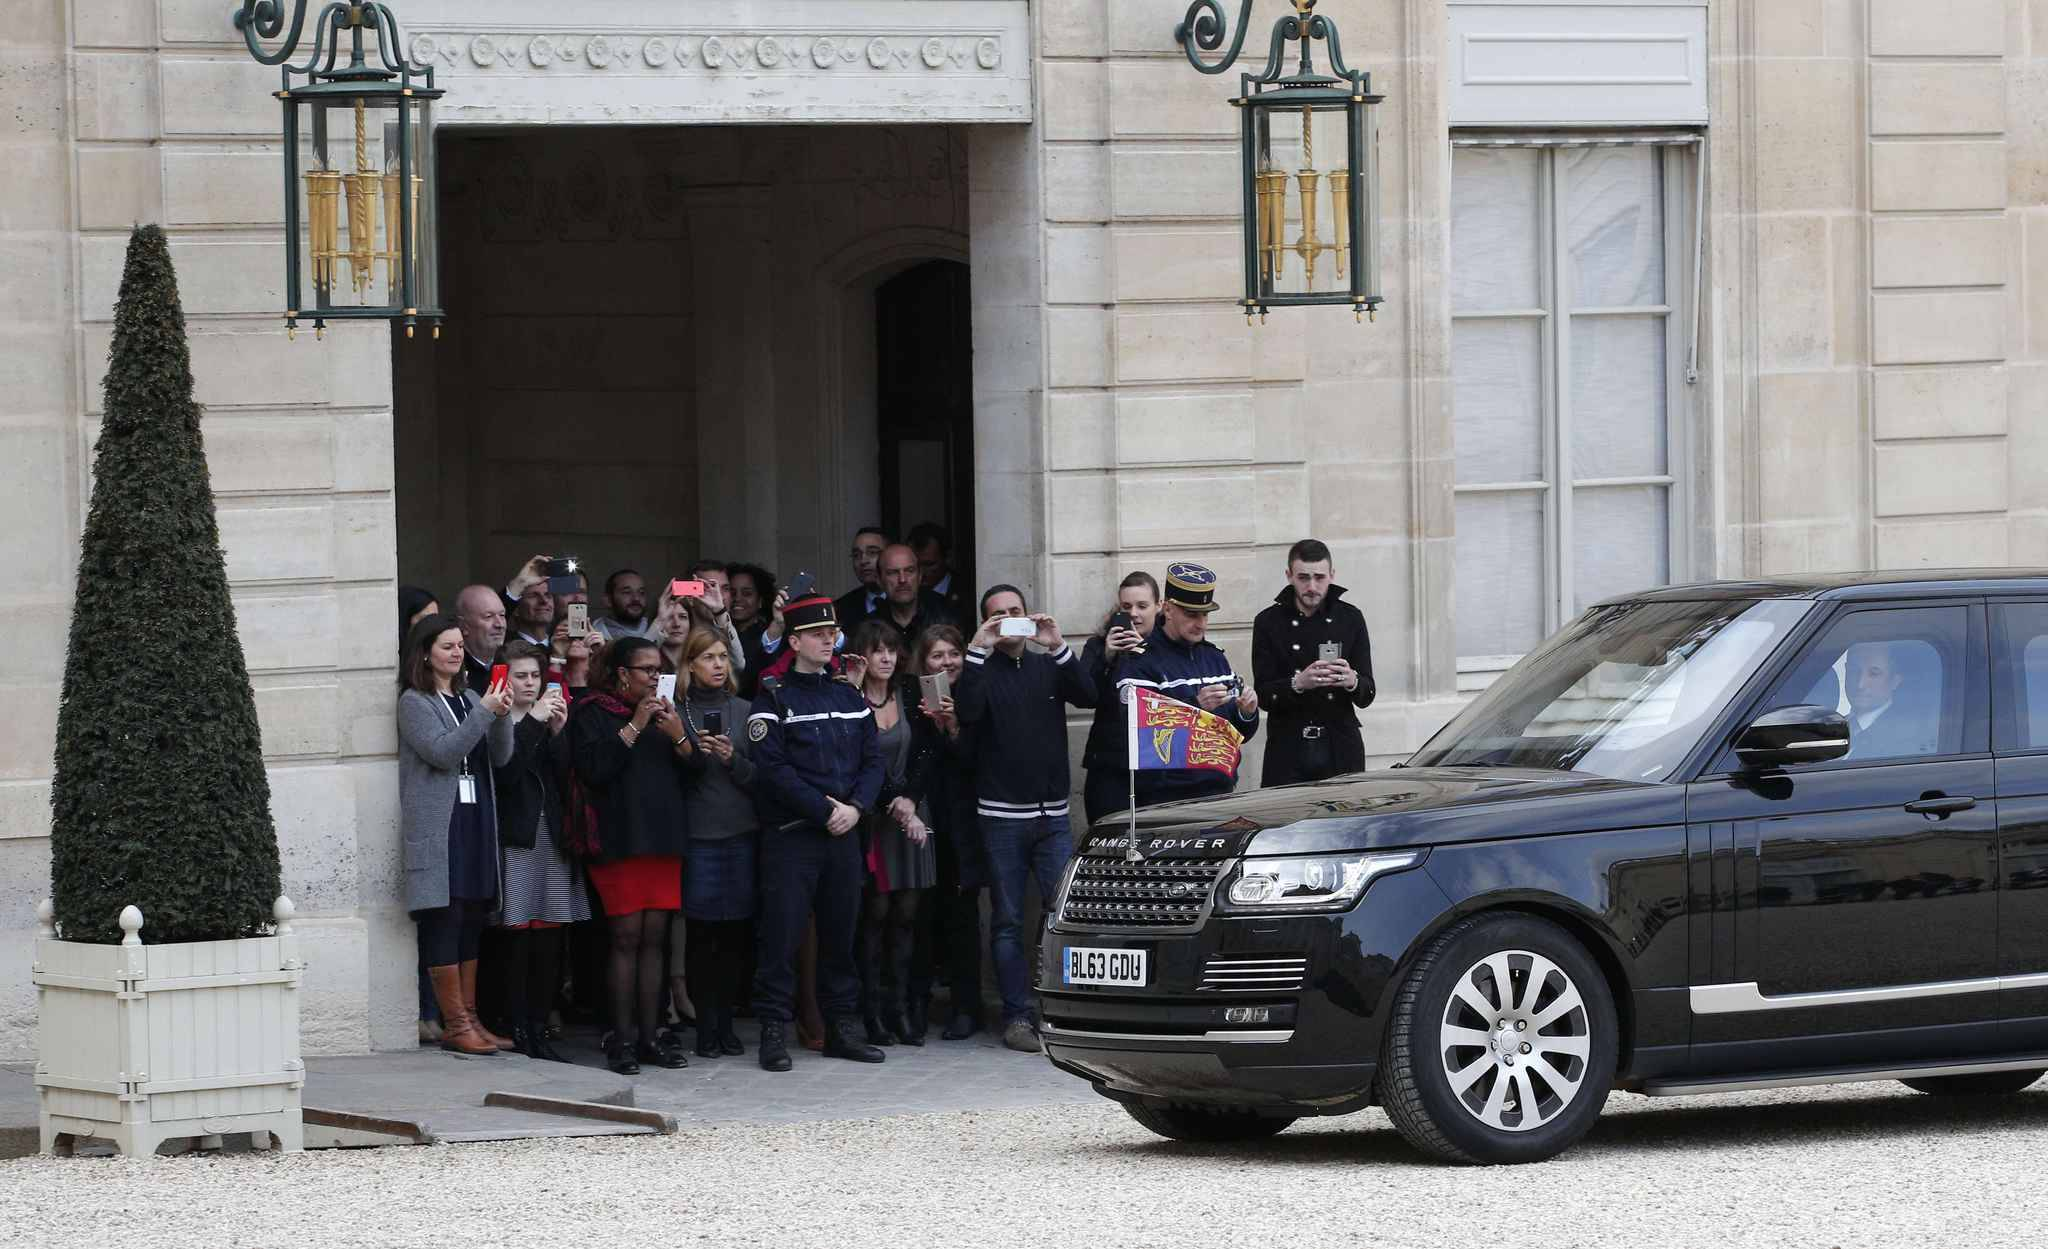 Elysee Palace employees watch Prince William and Kate, Duchess of Cambridge arriving in a car, in Paris, Friday March 17, 2017. Prince William and his wife Kate are coming to Paris to meet the French president as Britain gets ready to launch divorce proceedings from the European Union.